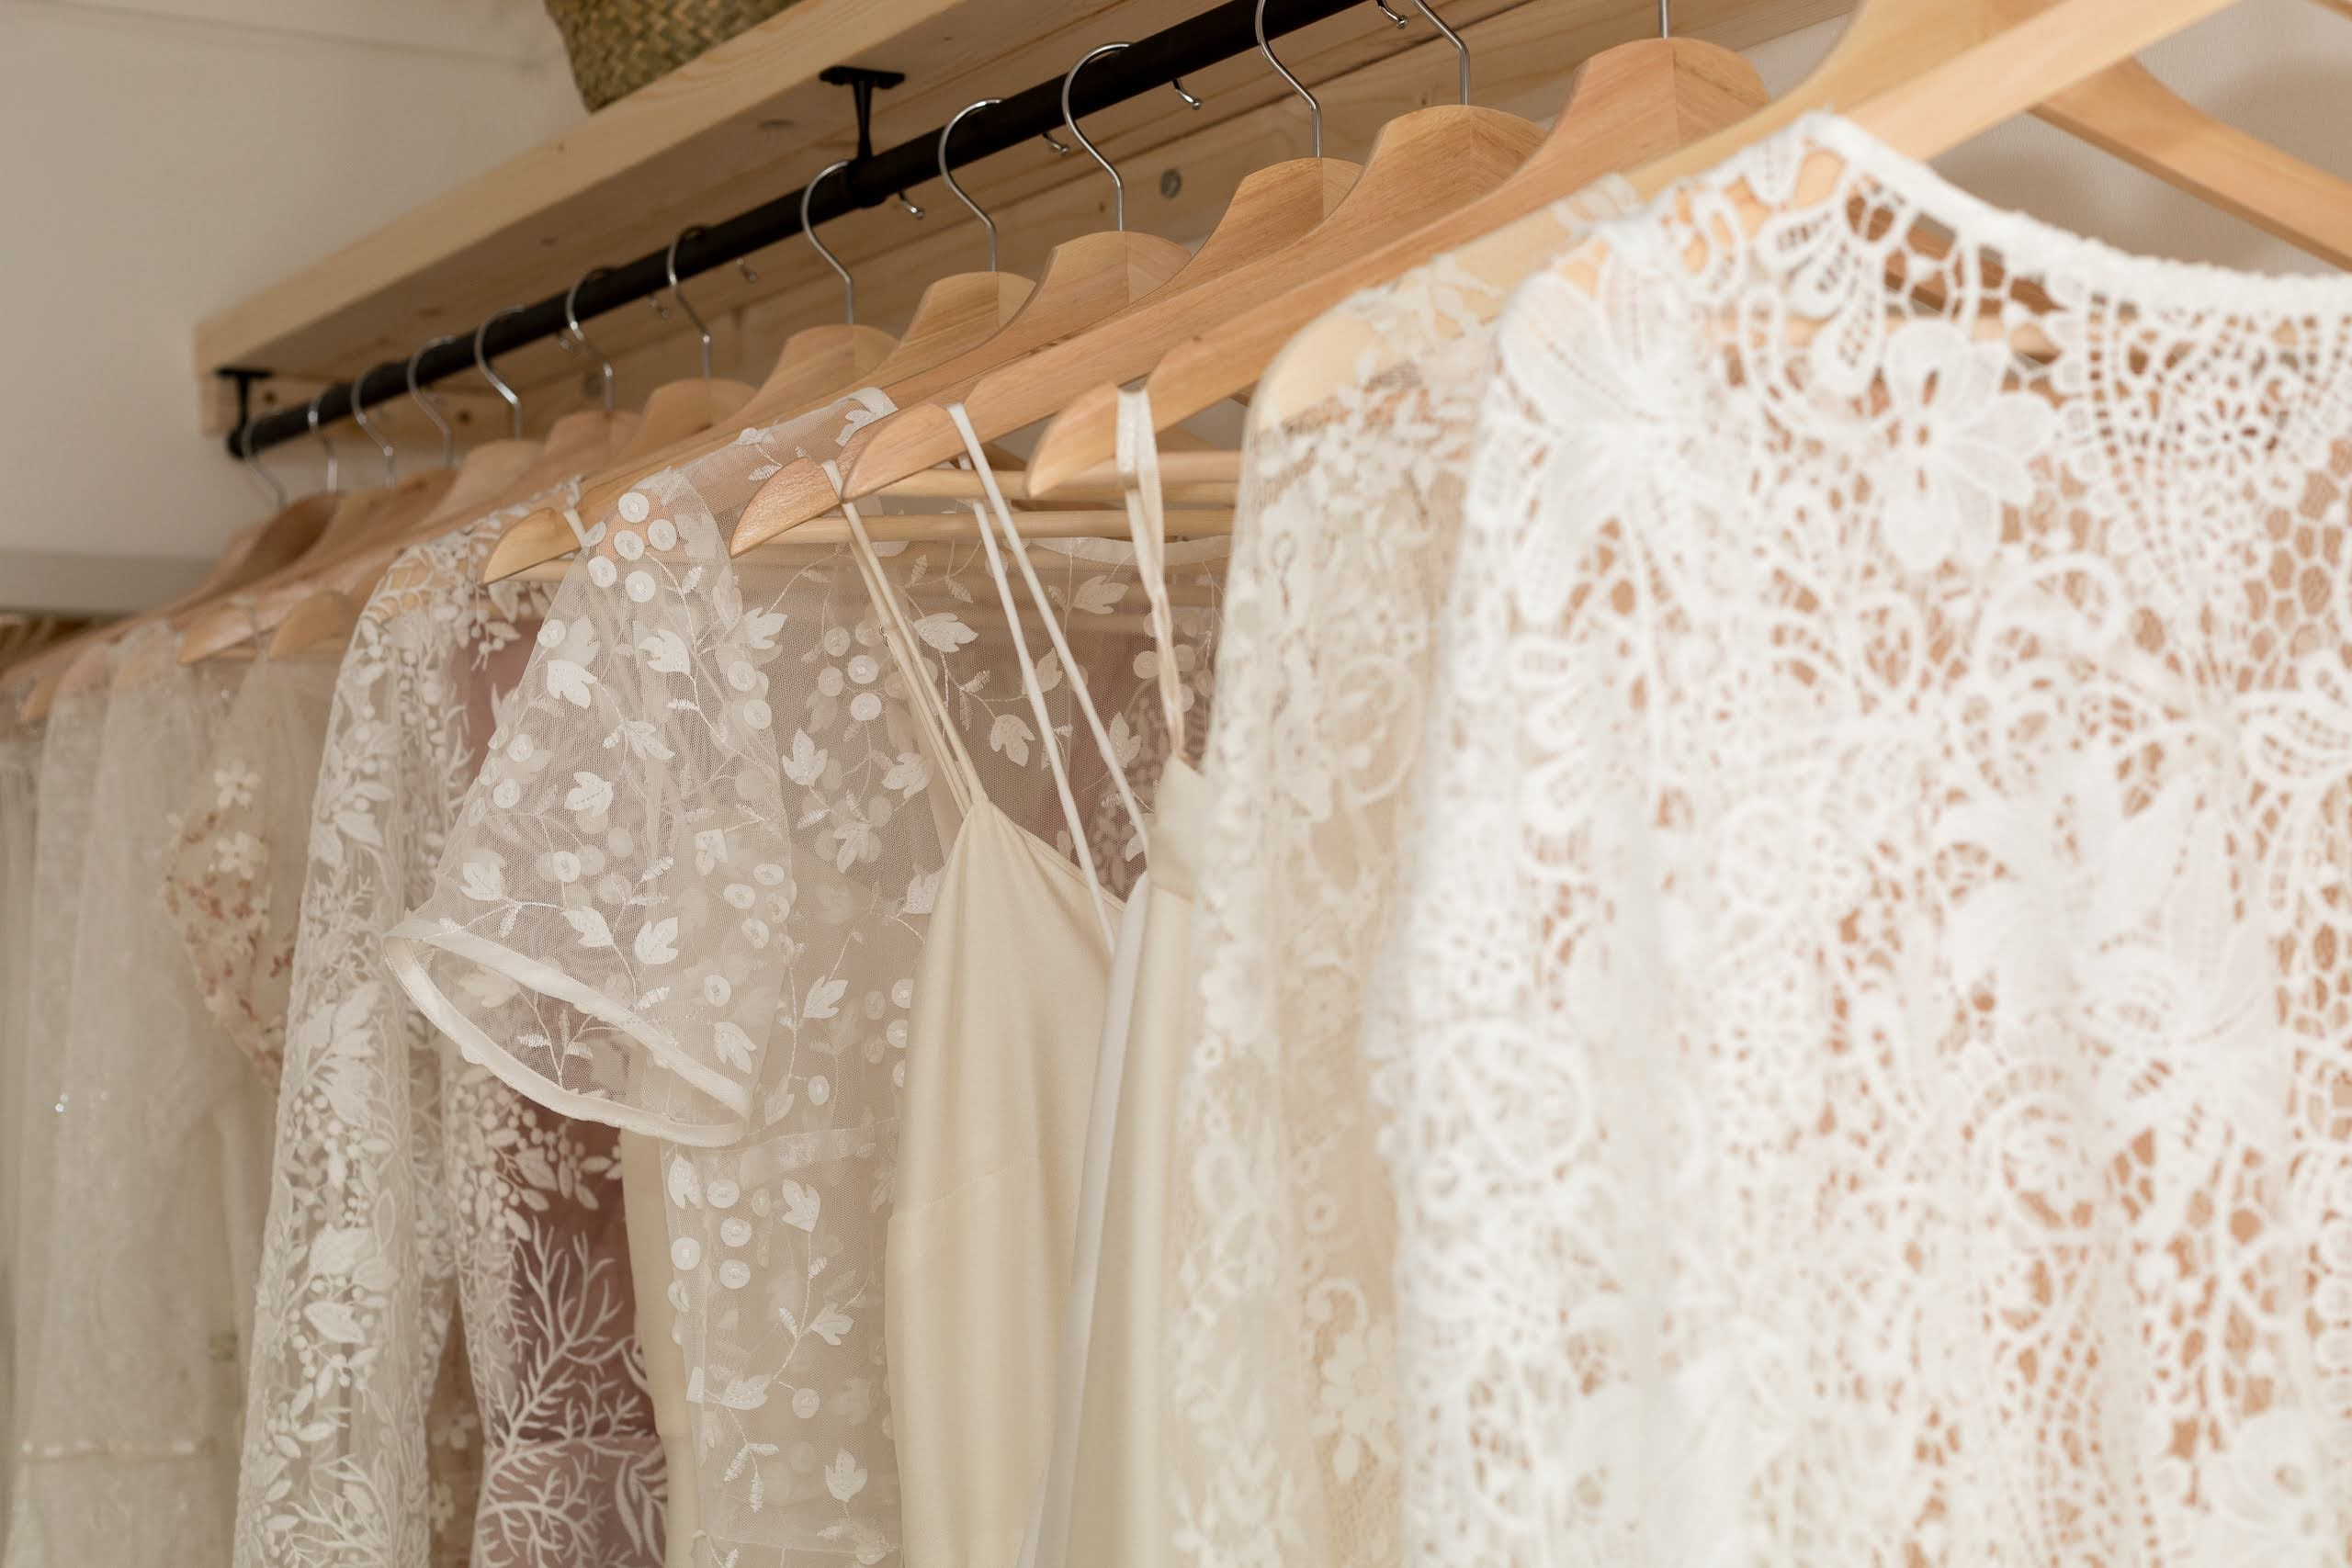 Rare Bridal Studio Dresses on the Rail